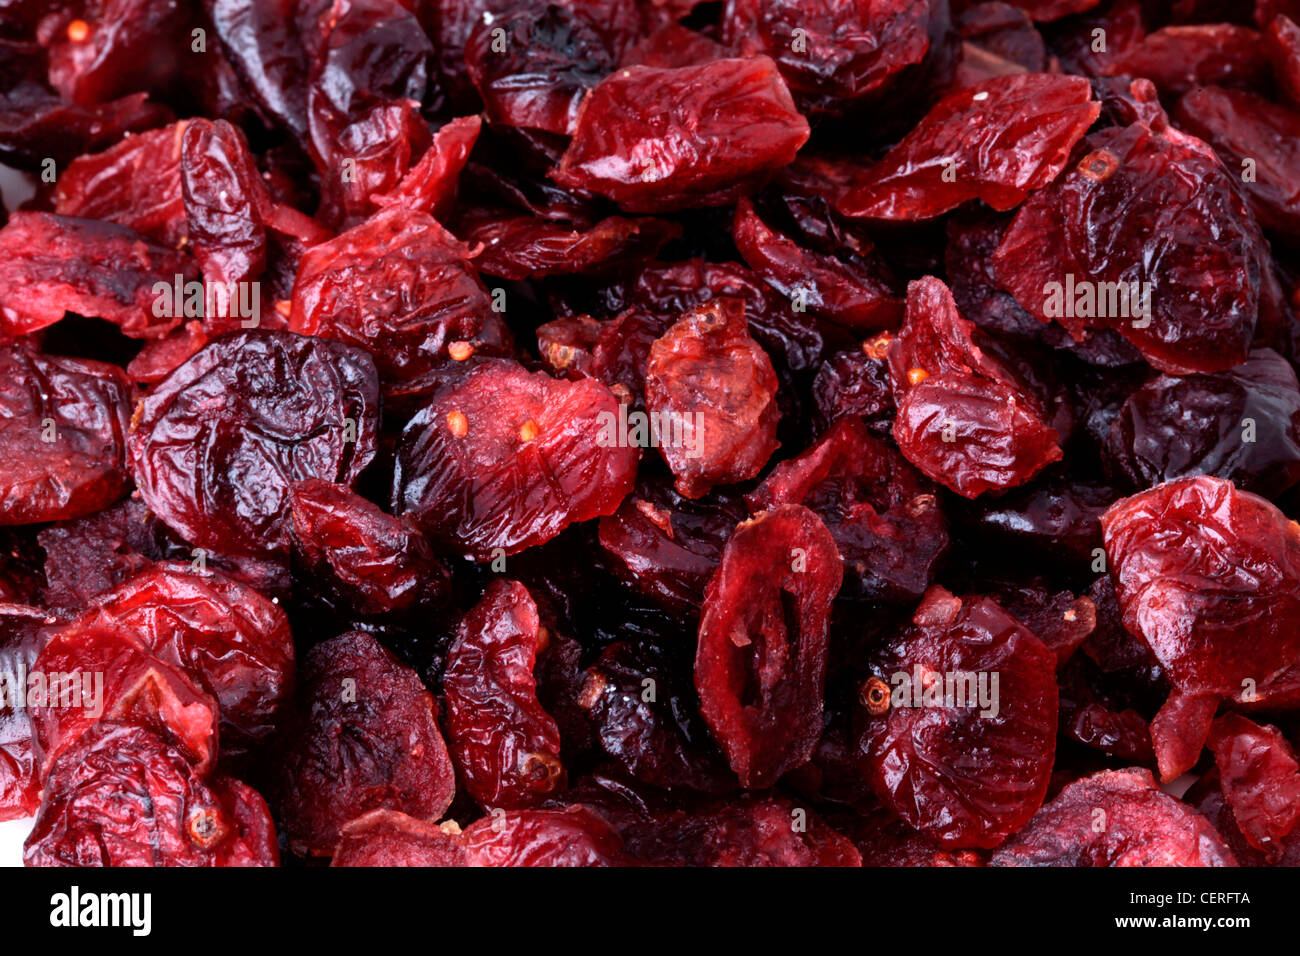 DRIED CRANBERRIES - Stock Image